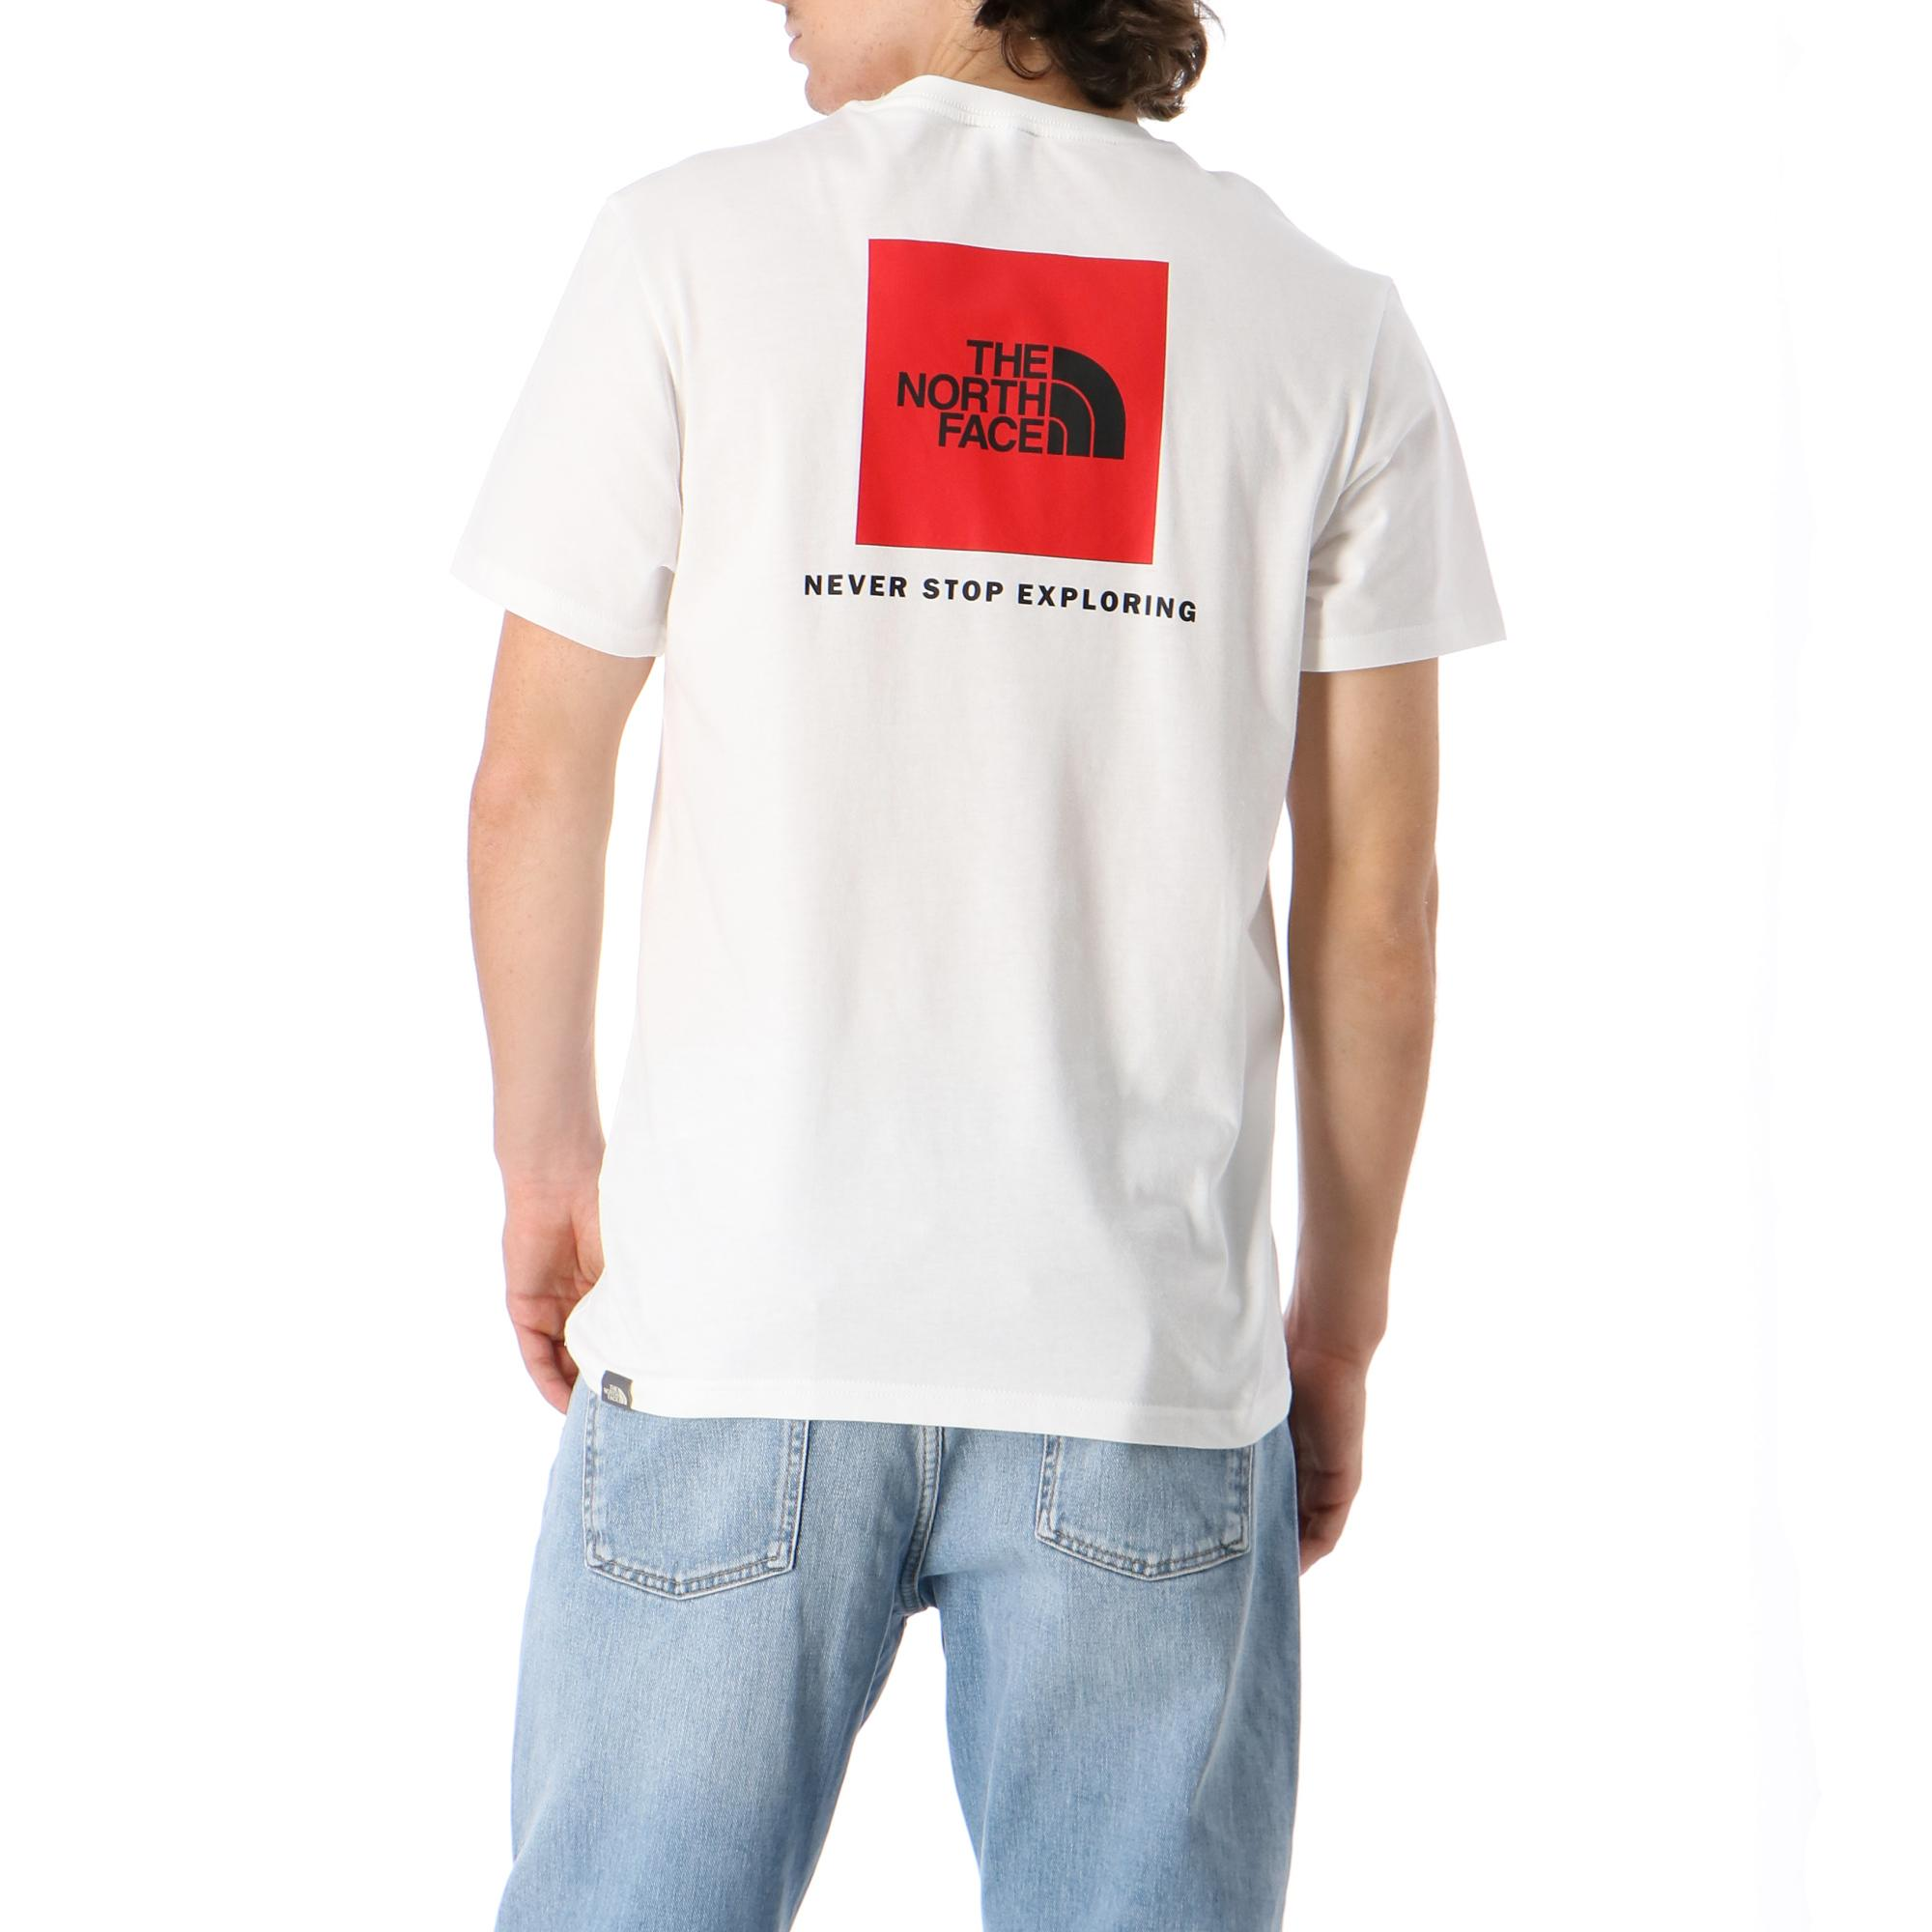 The North Face M S/s Redbox Tee TNF WHITE